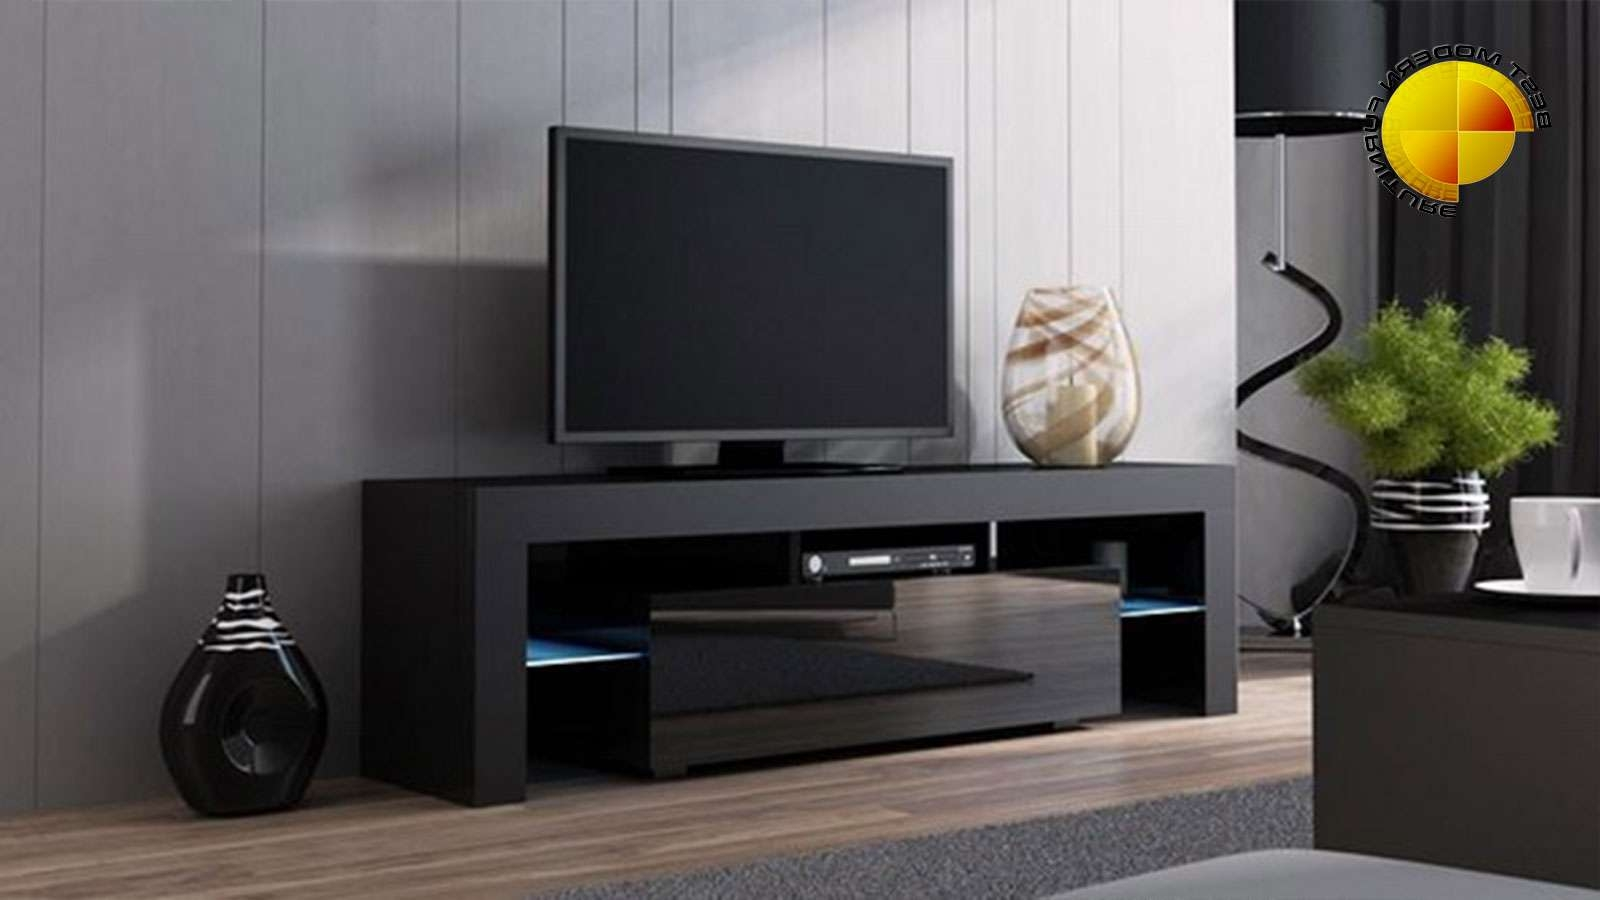 Modern Tv Stand 160cm High Gloss Cabinet Rgb Led Lights Black Unit Pertaining To Modern Tv Cabinets (View 5 of 20)